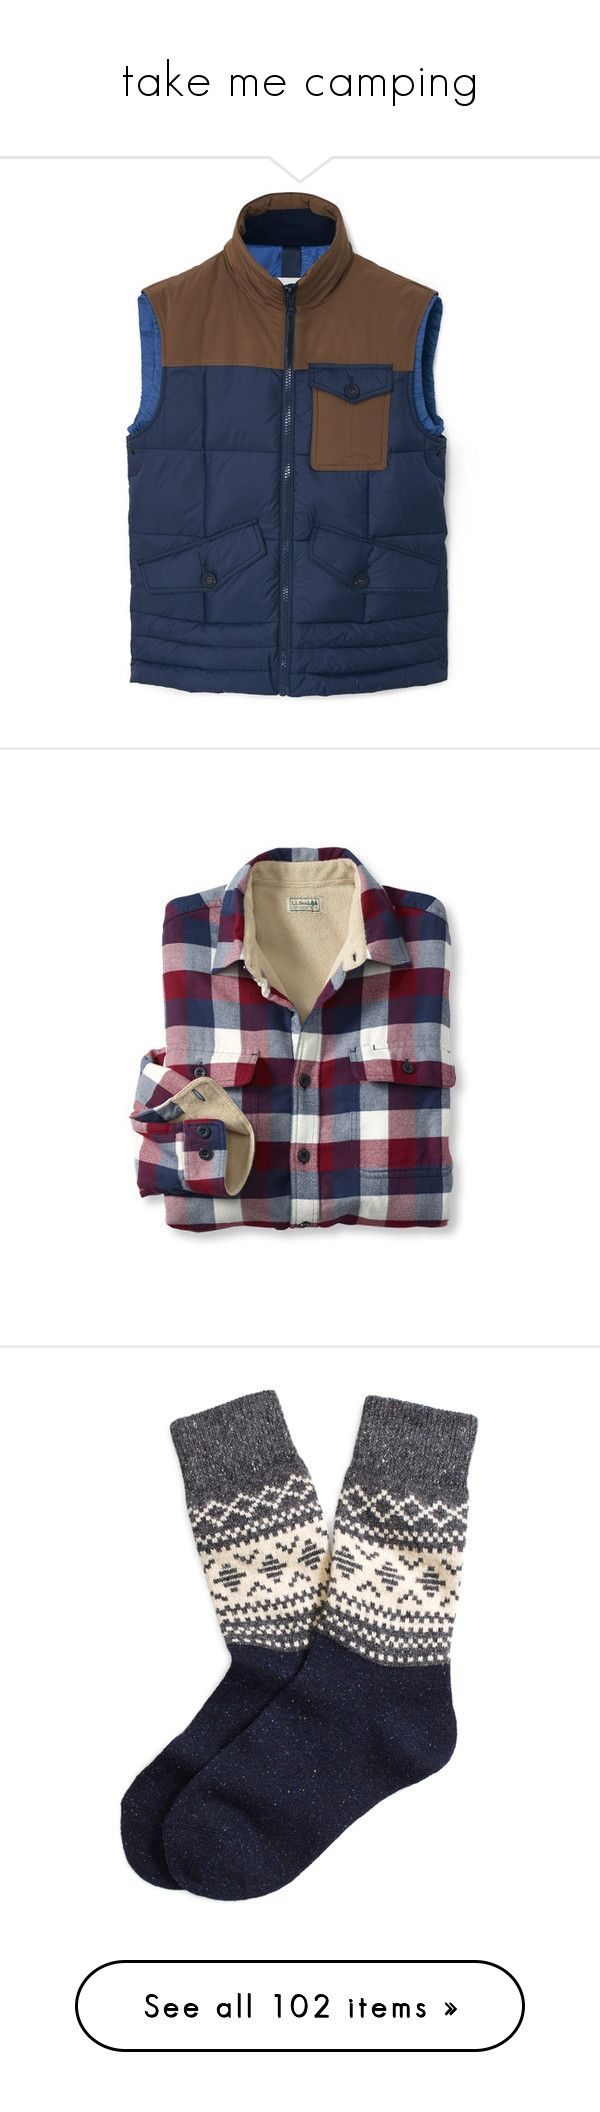 """""""take me camping"""" by croptopkitten ❤ liked on Polyvore featuring men's fashion, men's clothing, men's outerwear, men's vests, mens quilted vest, mens zip vest, mens zipper vest, men's shirts, men's casual shirts and tops"""